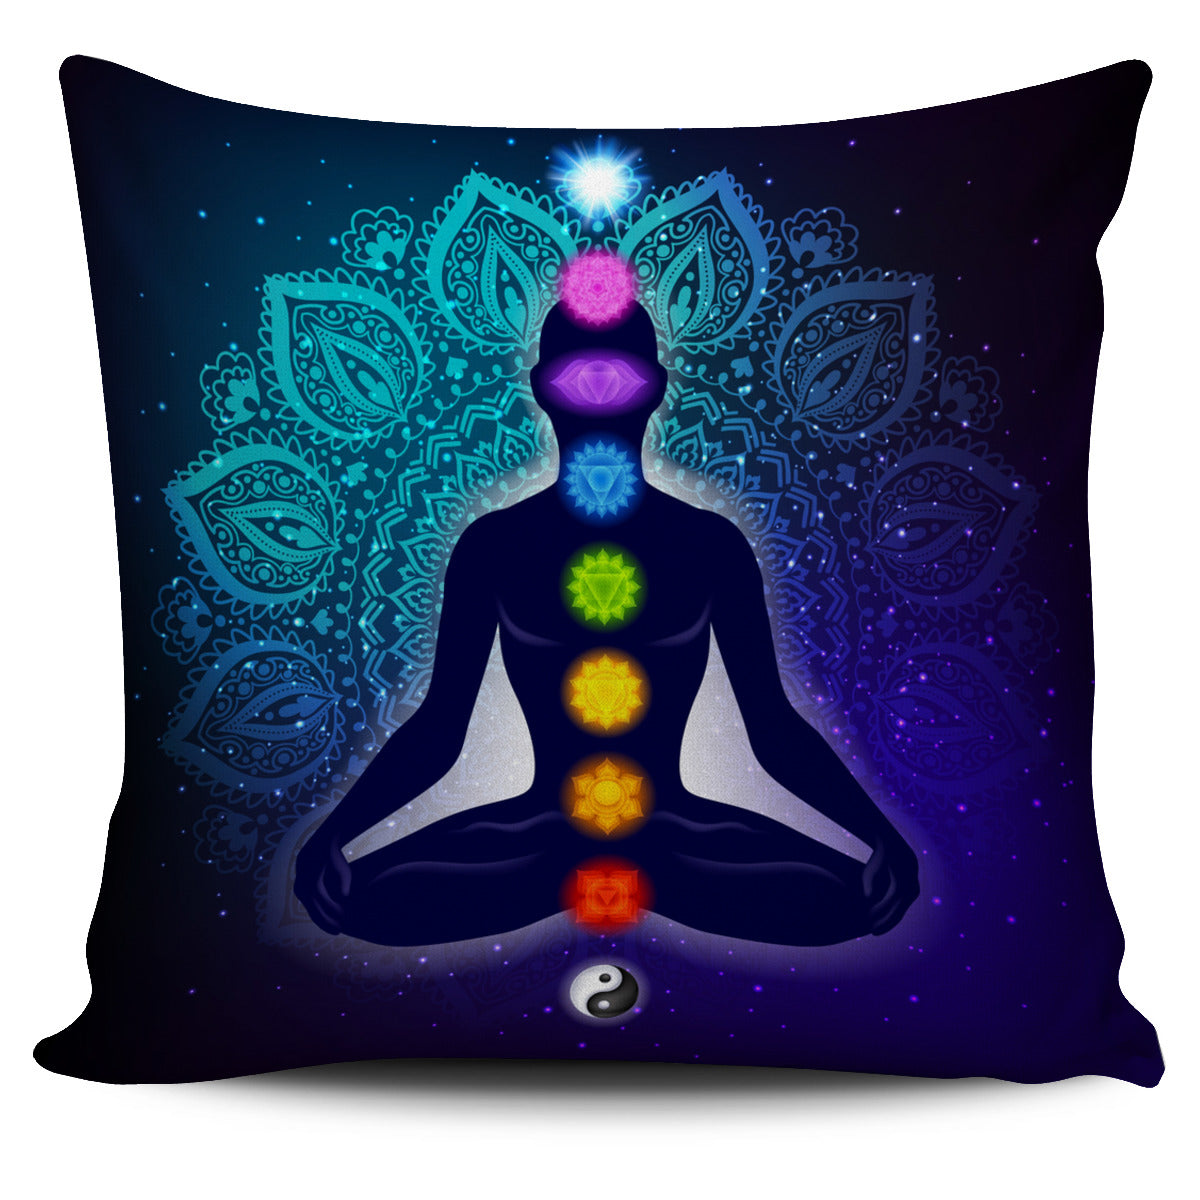 7-Chakra Harmony Pillow Cover 64% Off!